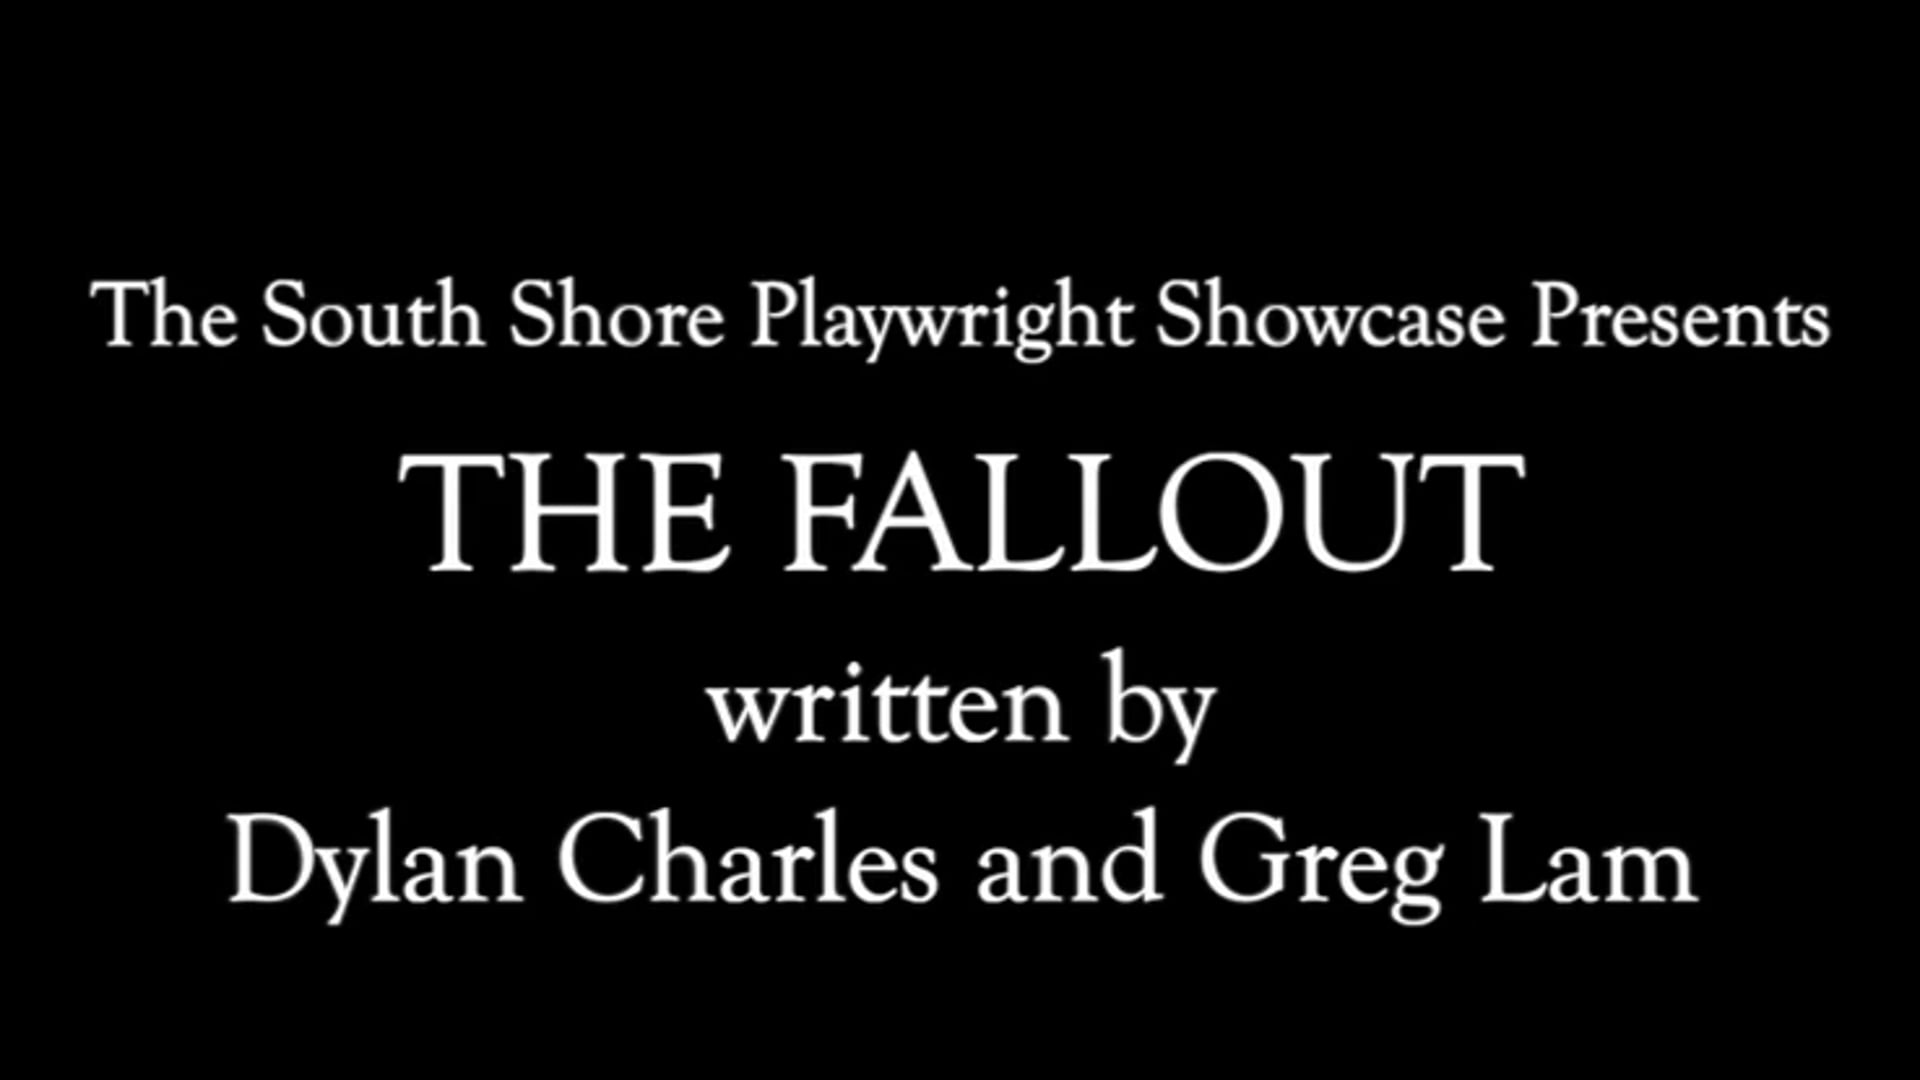 The Fallout by Dylan Charles and Greg Lam (South Shore Playwright Showcase Presents)